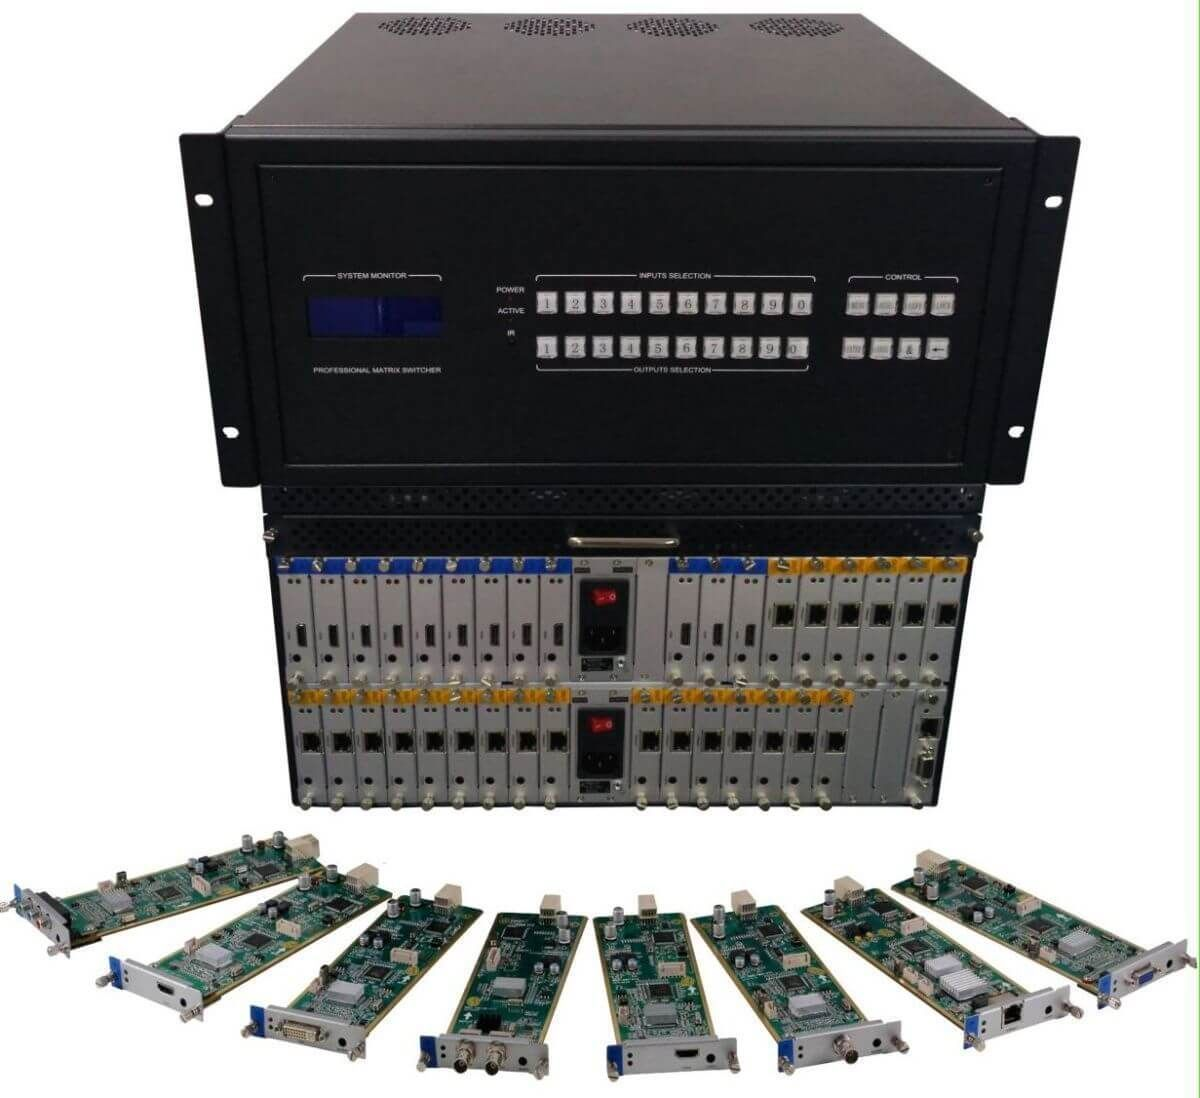 8x24 HDMI Matrix Switcher with Video Wall Processor